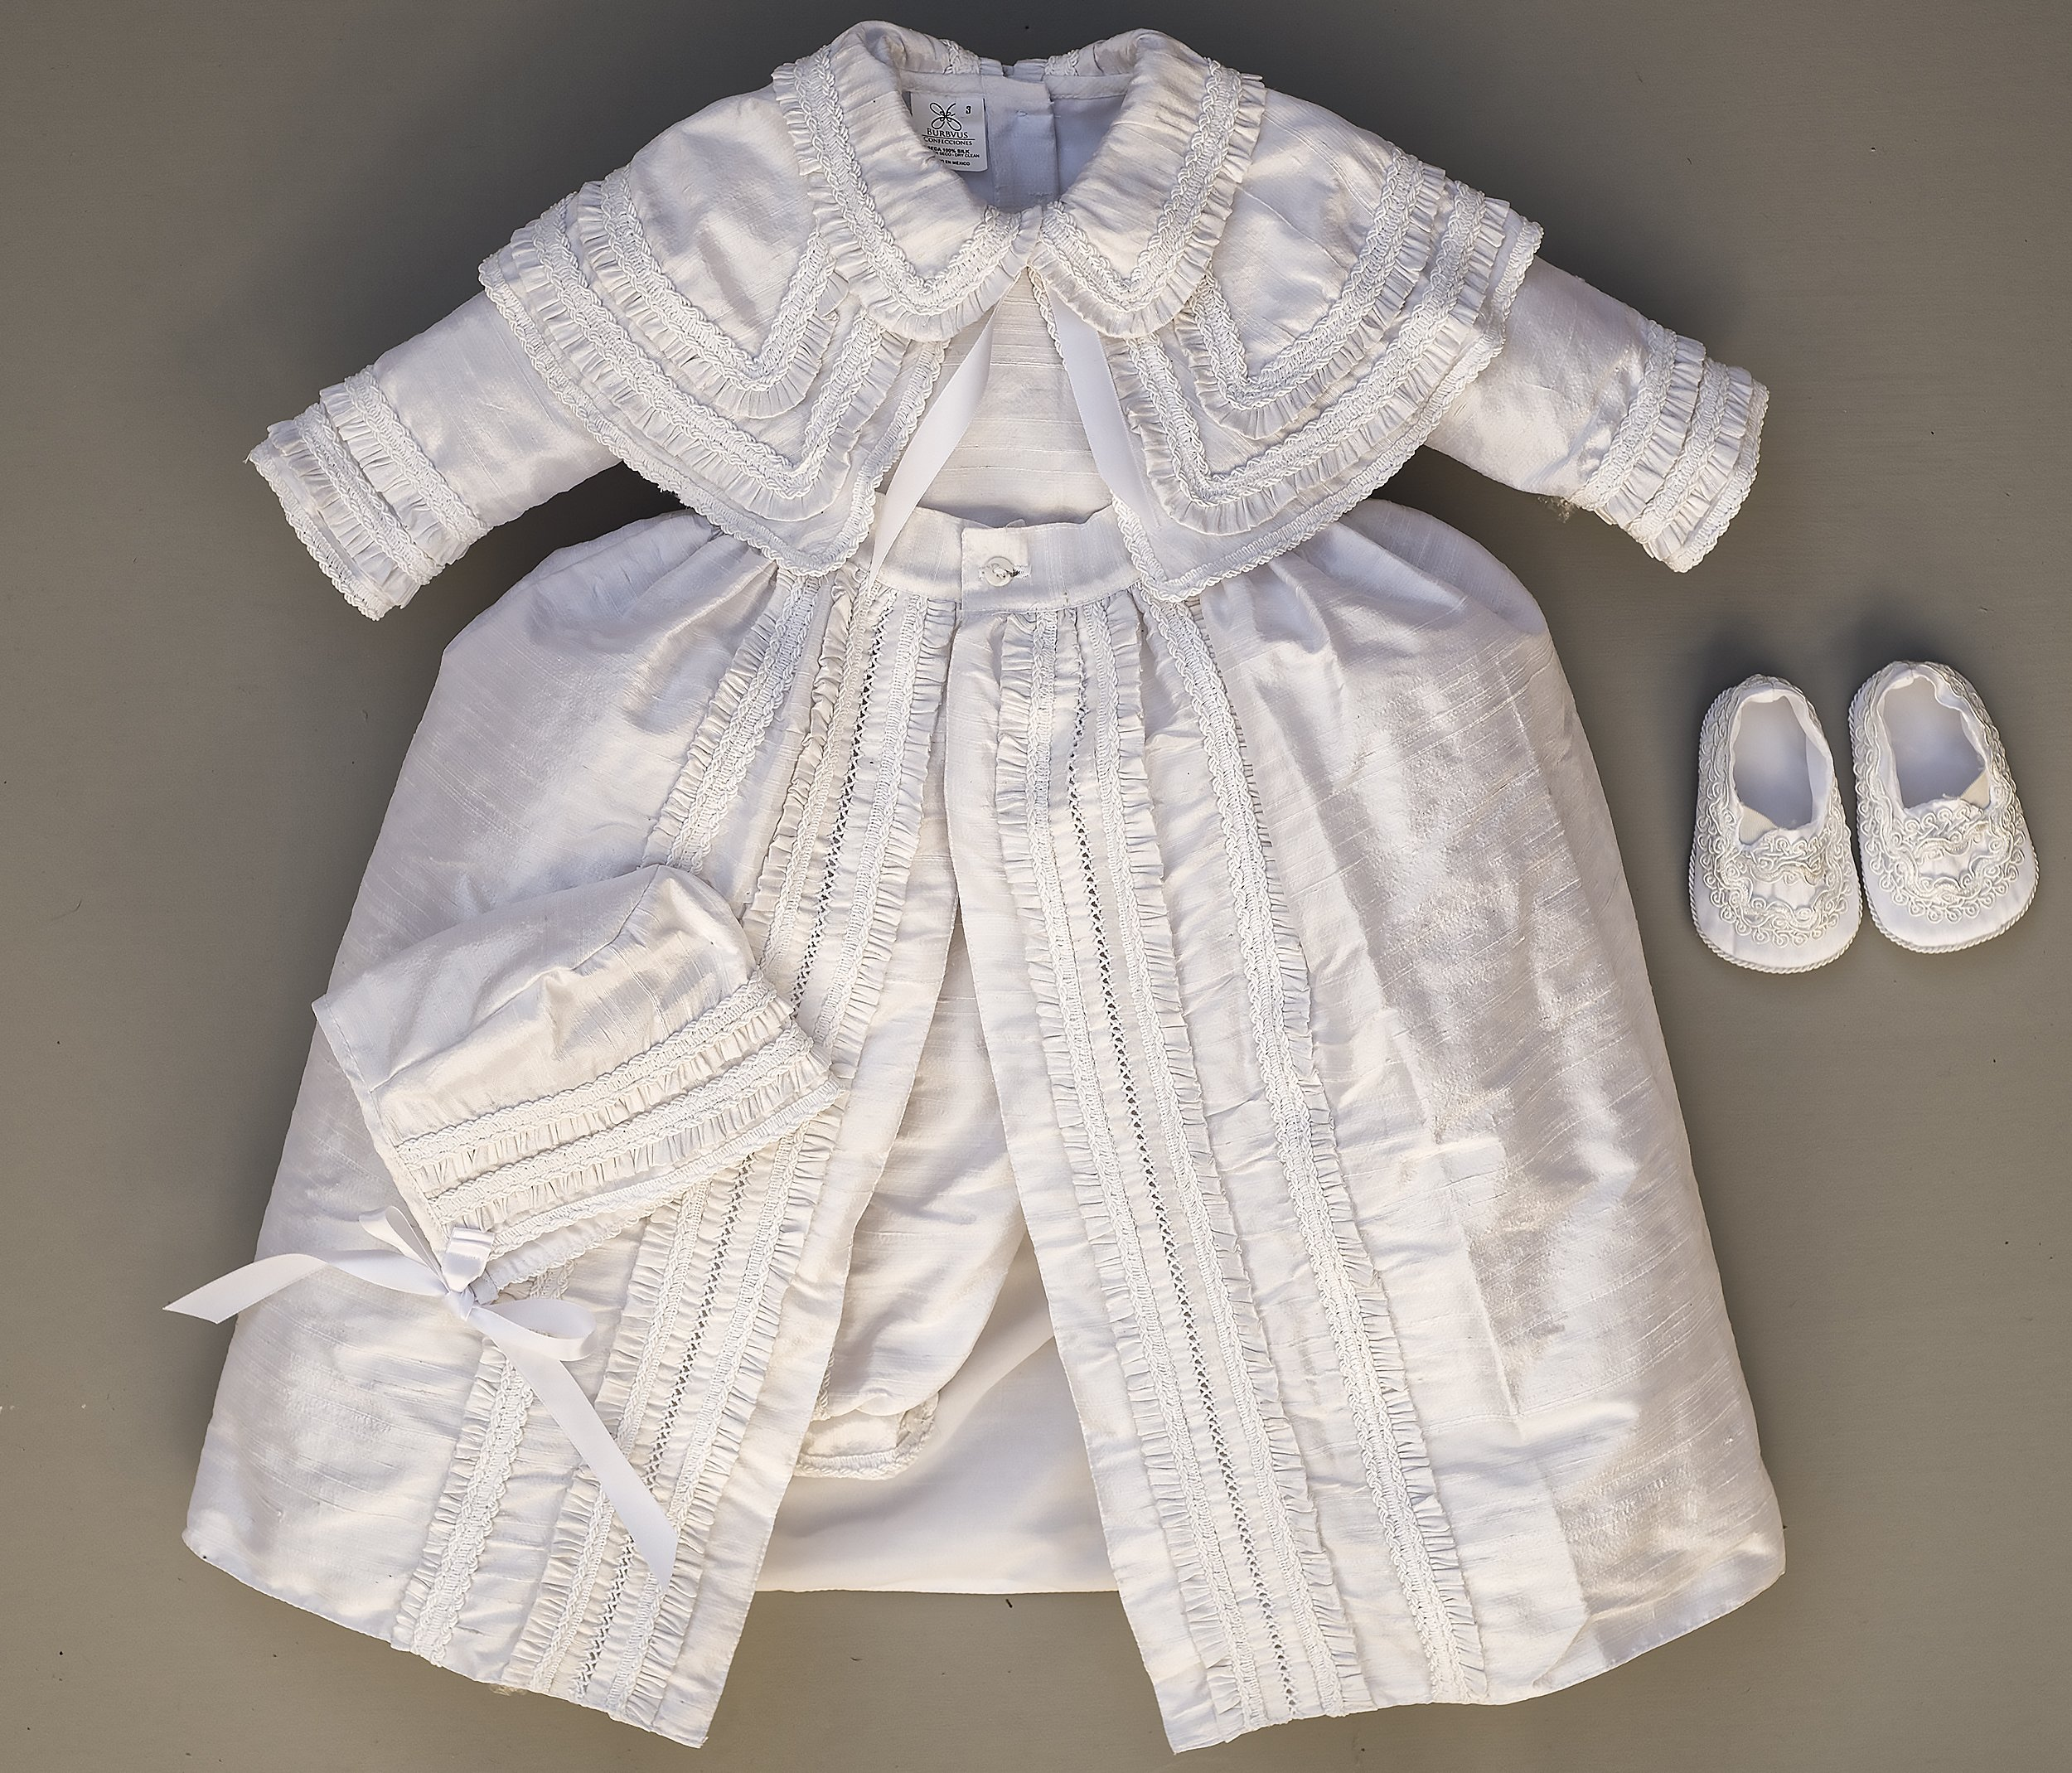 Heirloom Baby Boy's Christening Baptism Gown, Hand Made White Burbvus Ropones by Burbvus (Image #3)